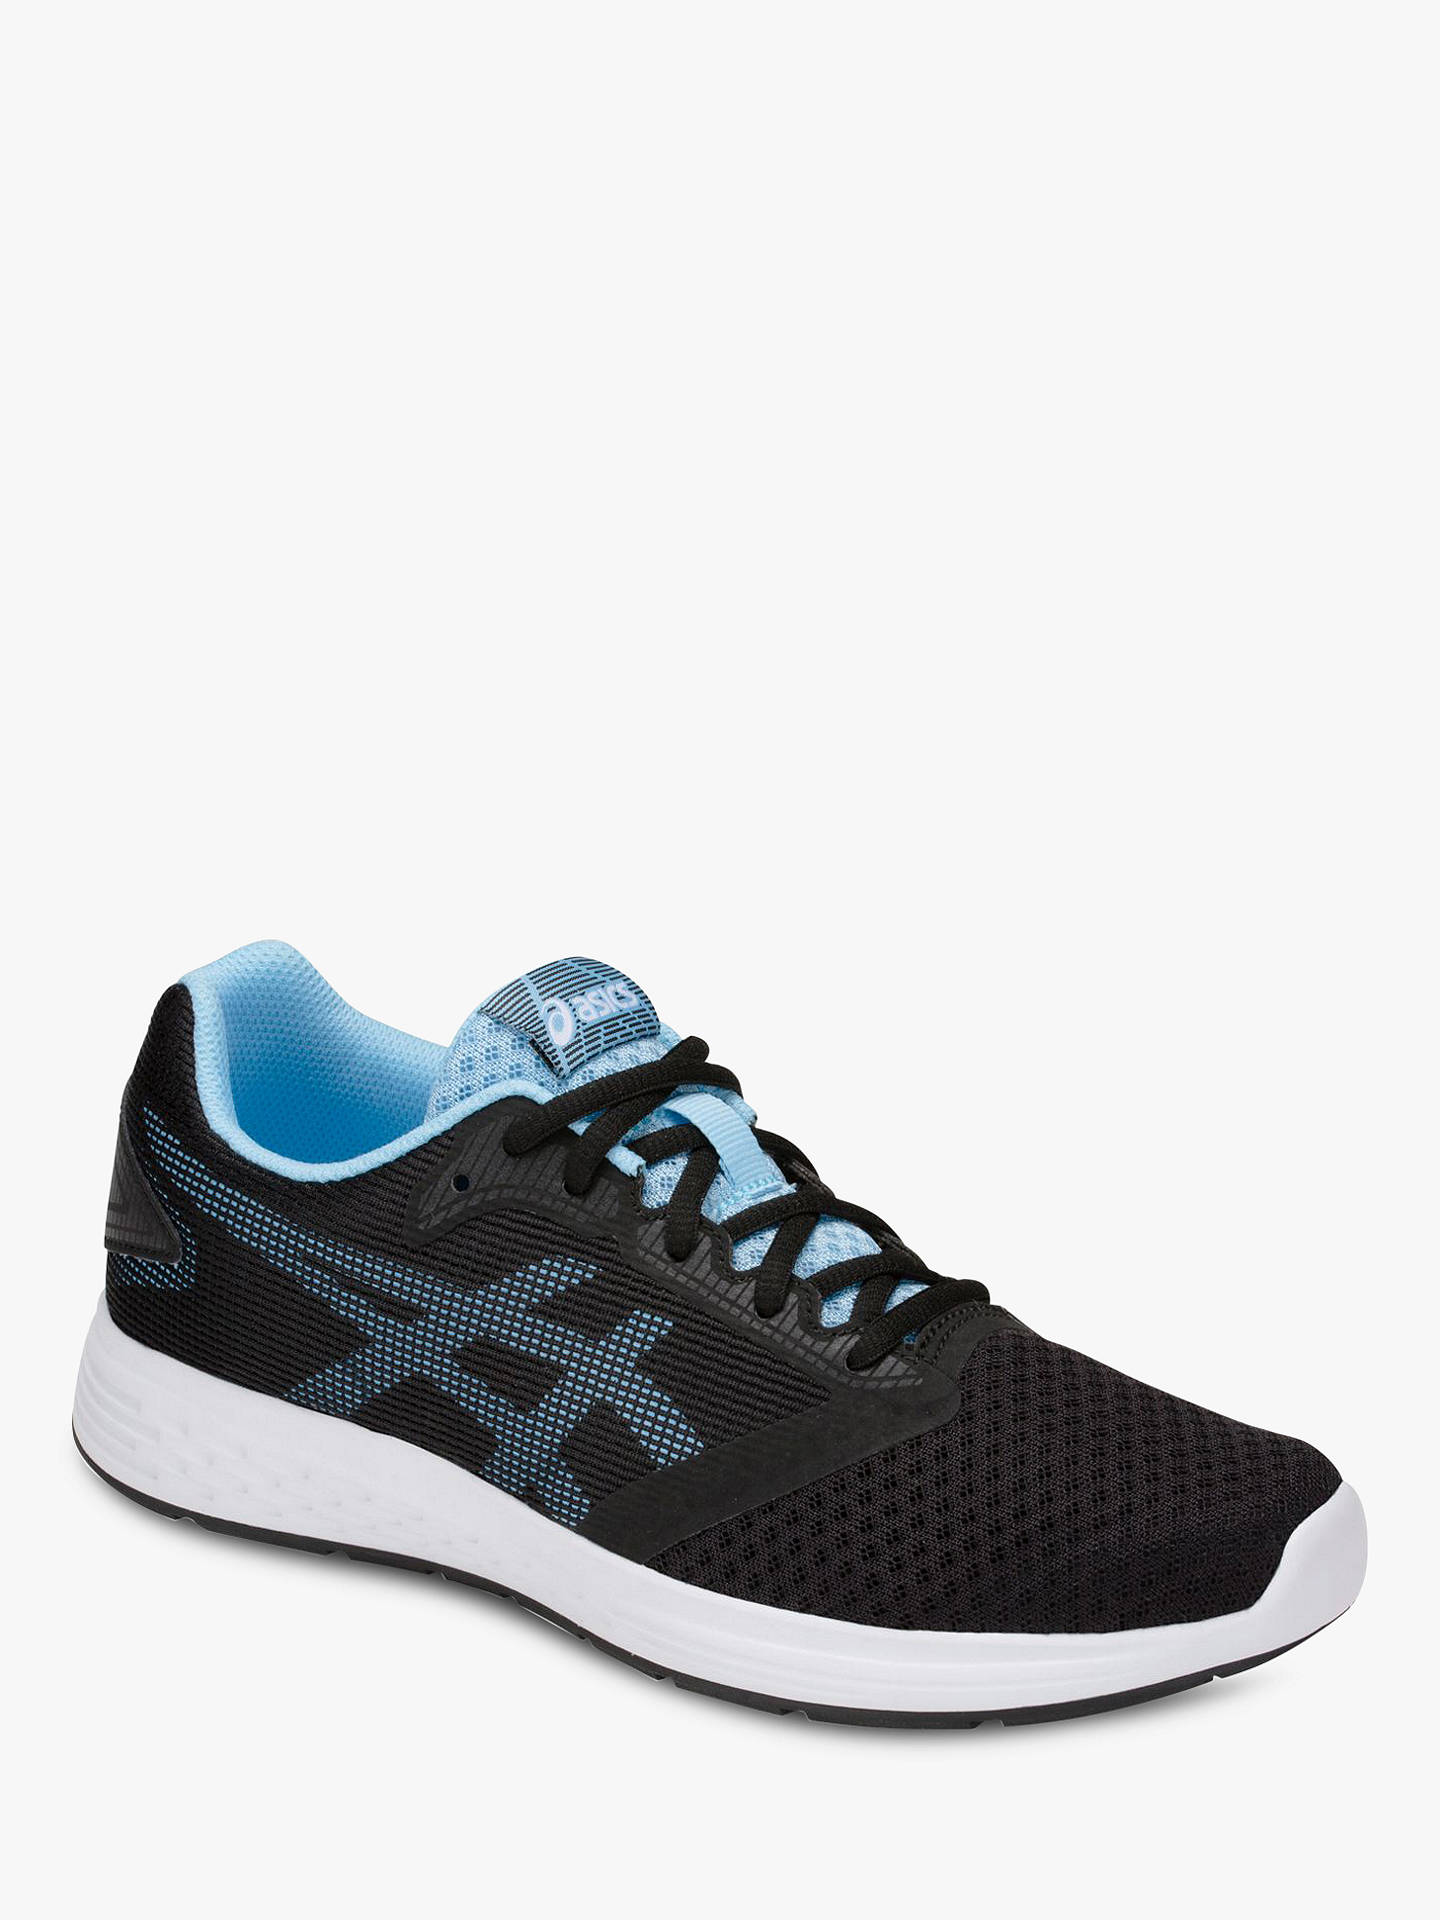 c58b25be5ecbb ASICS PATRIOT 10 Women's Running Shoes at John Lewis & Partners